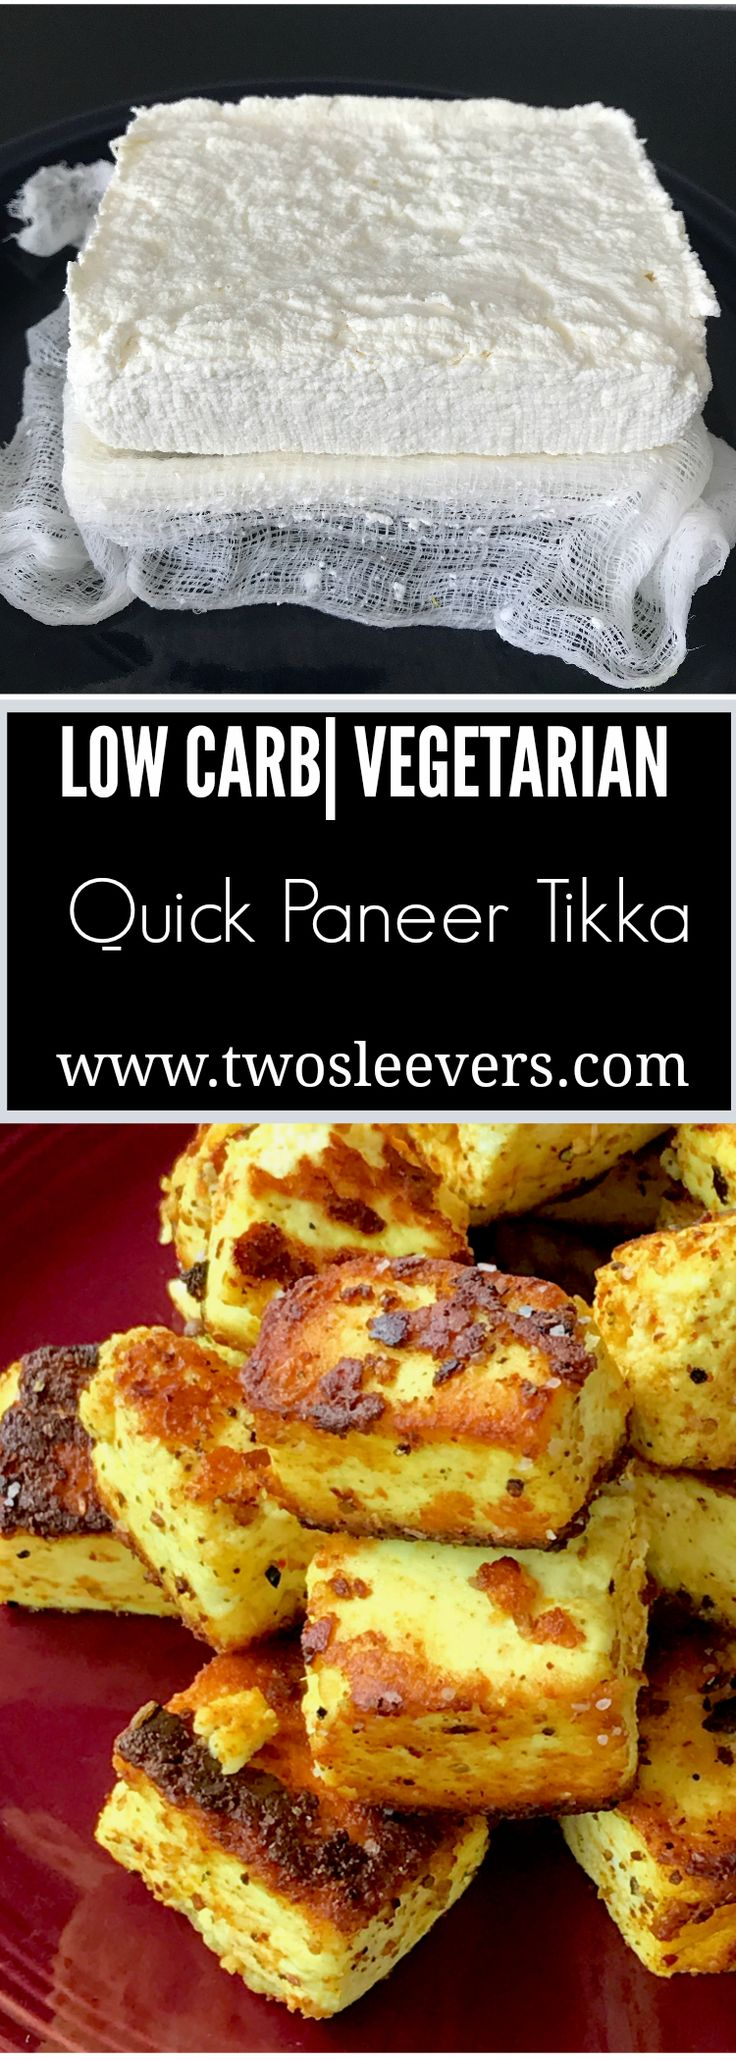 Low Carb Vegetarian Paneer tikka. Spiced paneer, panfried quickly in ghee for a savory, Indian snack. Find a recipe for homemade paneer as well at www.twosleevers.com